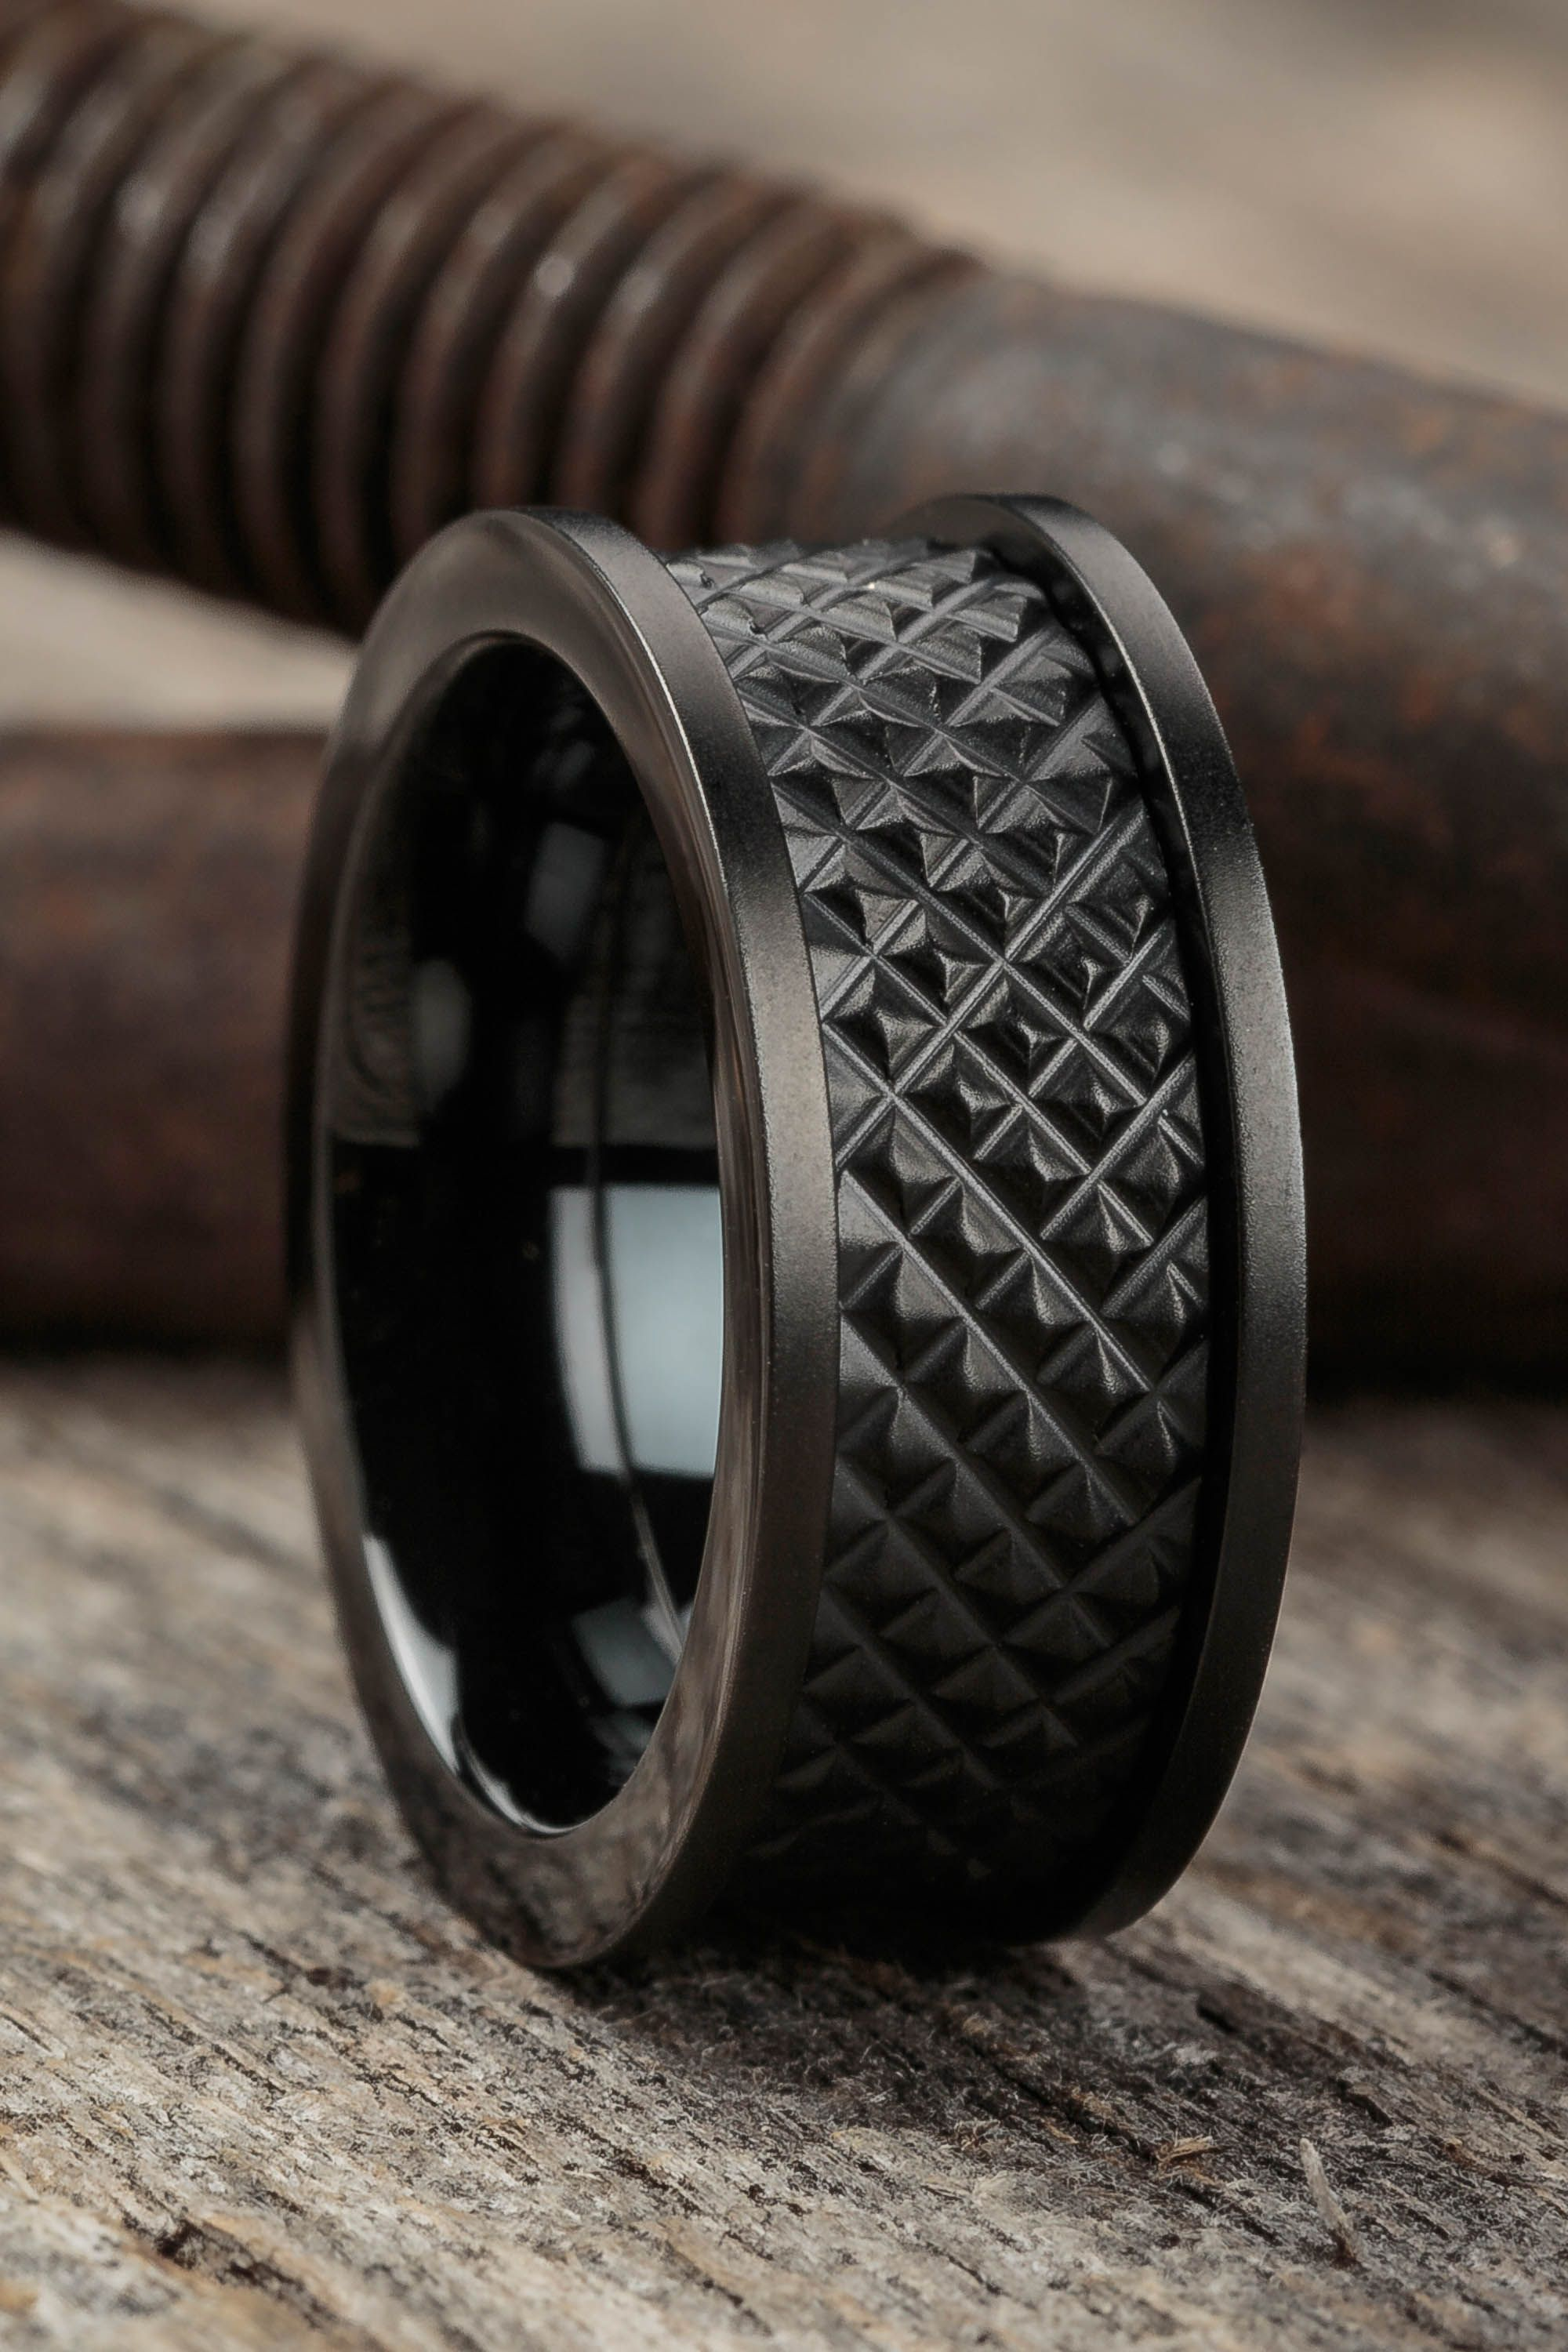 The perfect gift for your man (With images) Rings for